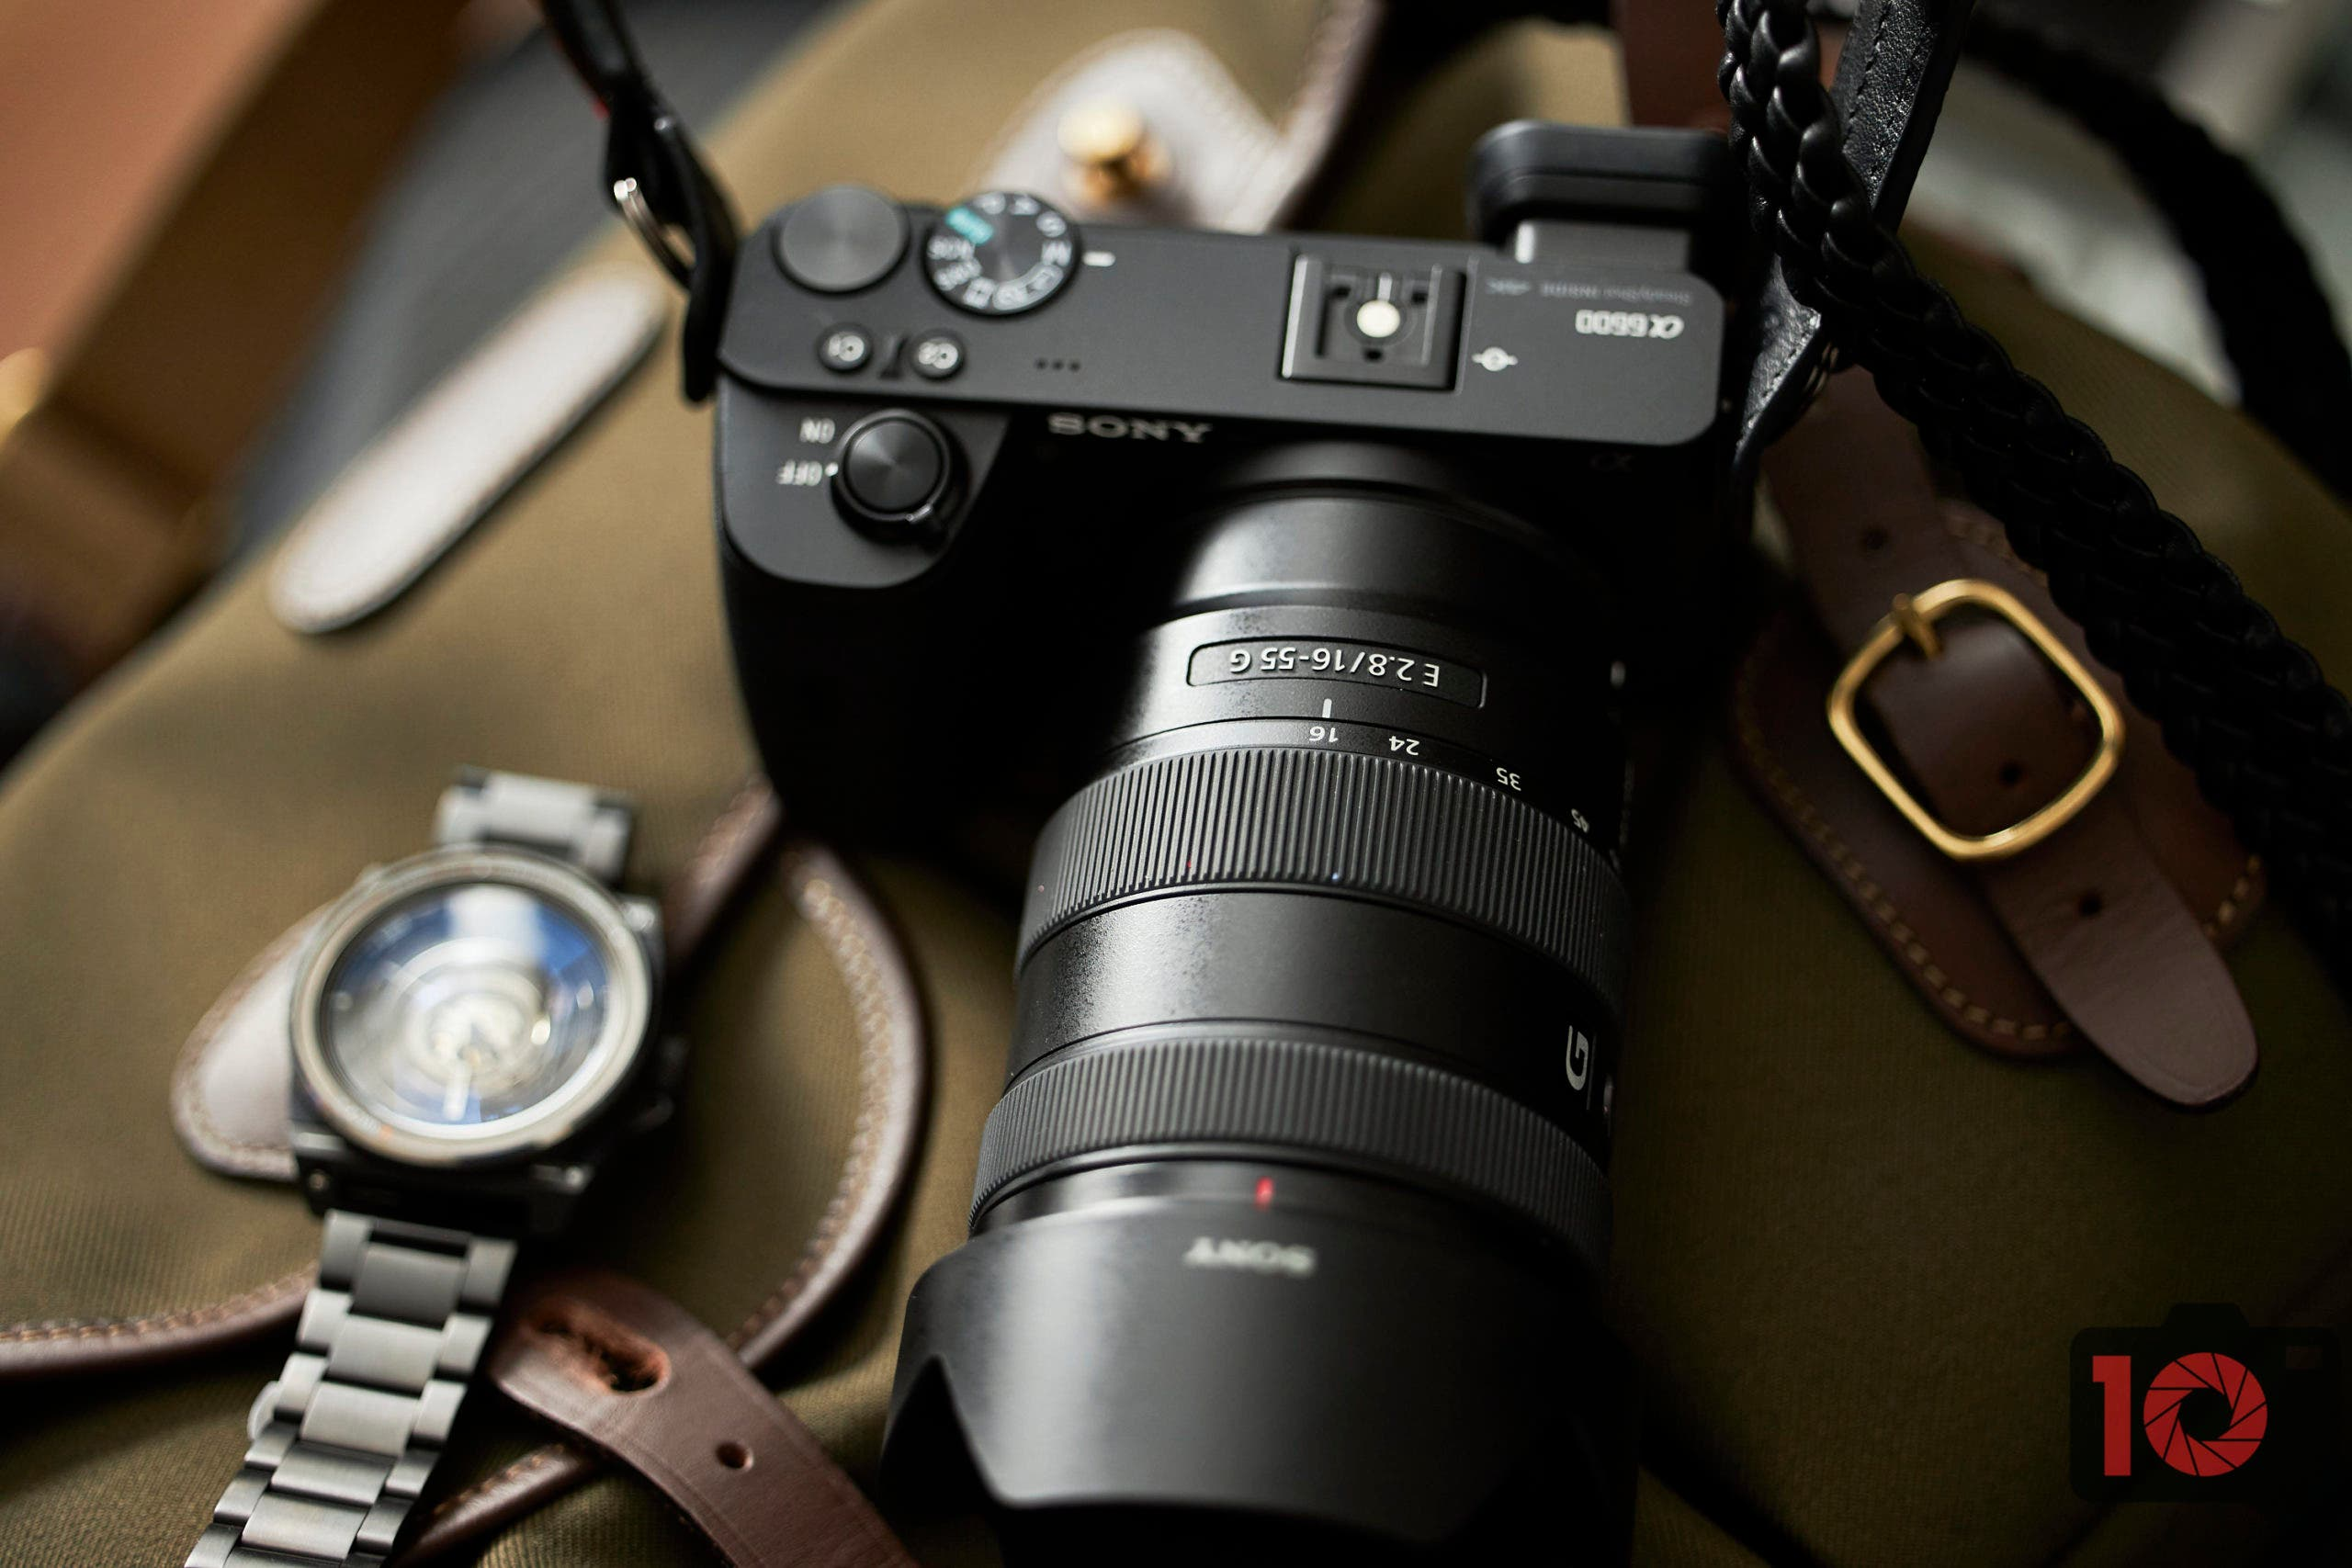 Review: Sony 16-55mm F2.8 G (The Best Lens of 2015 in 2019)